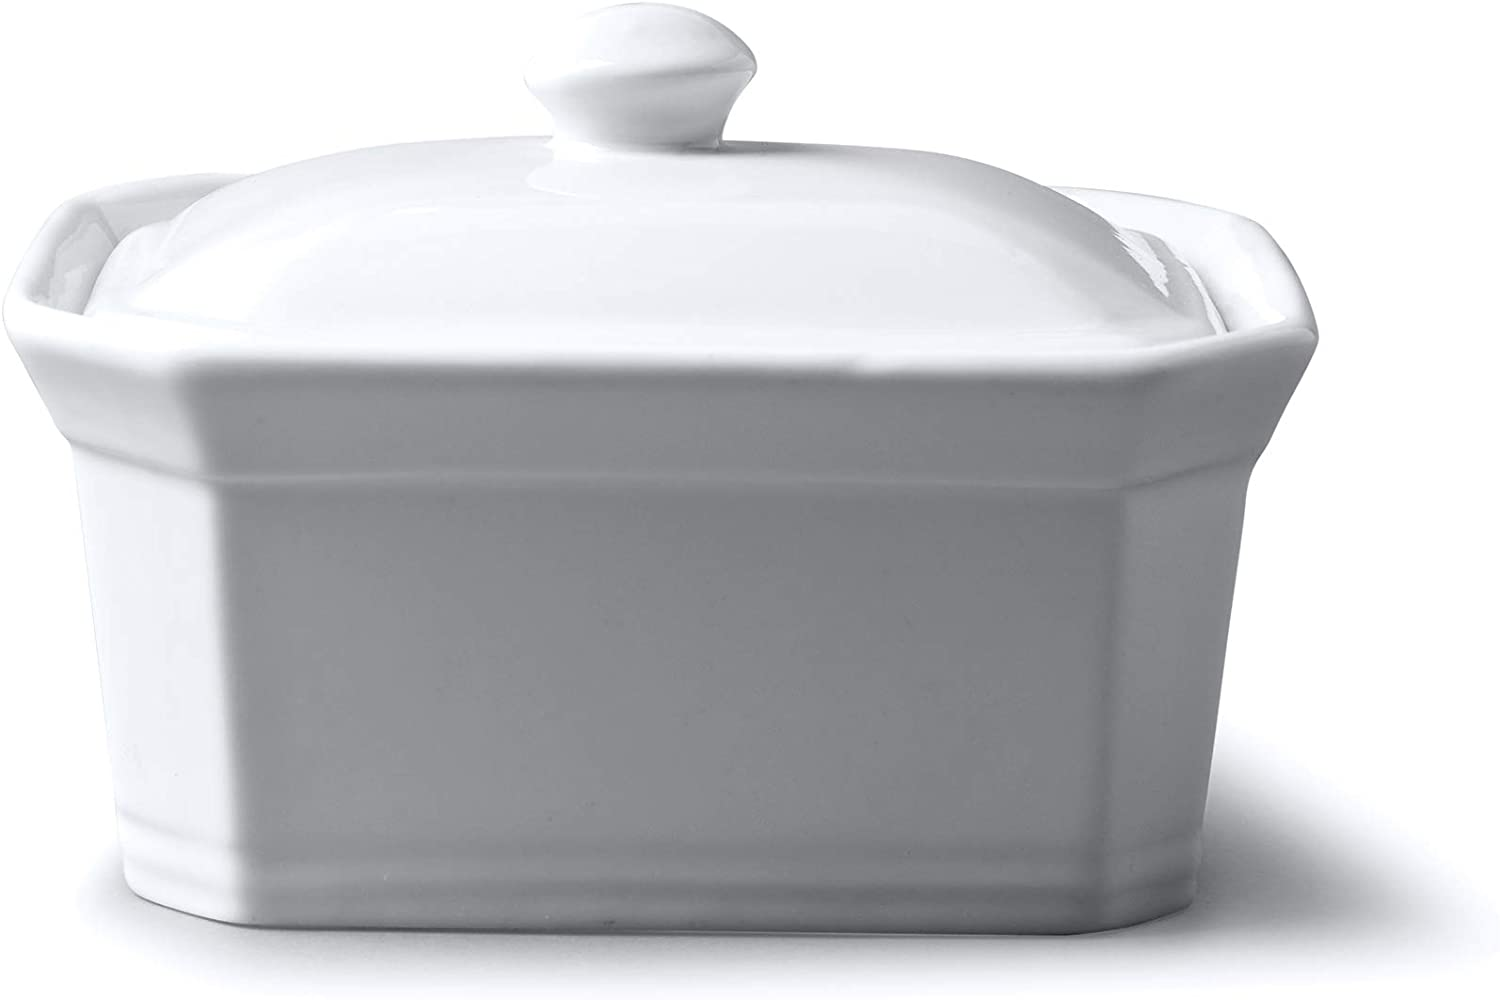 WM Bartleet & Sons 1750 T153 Butter/Terrine Dish with Lid, White